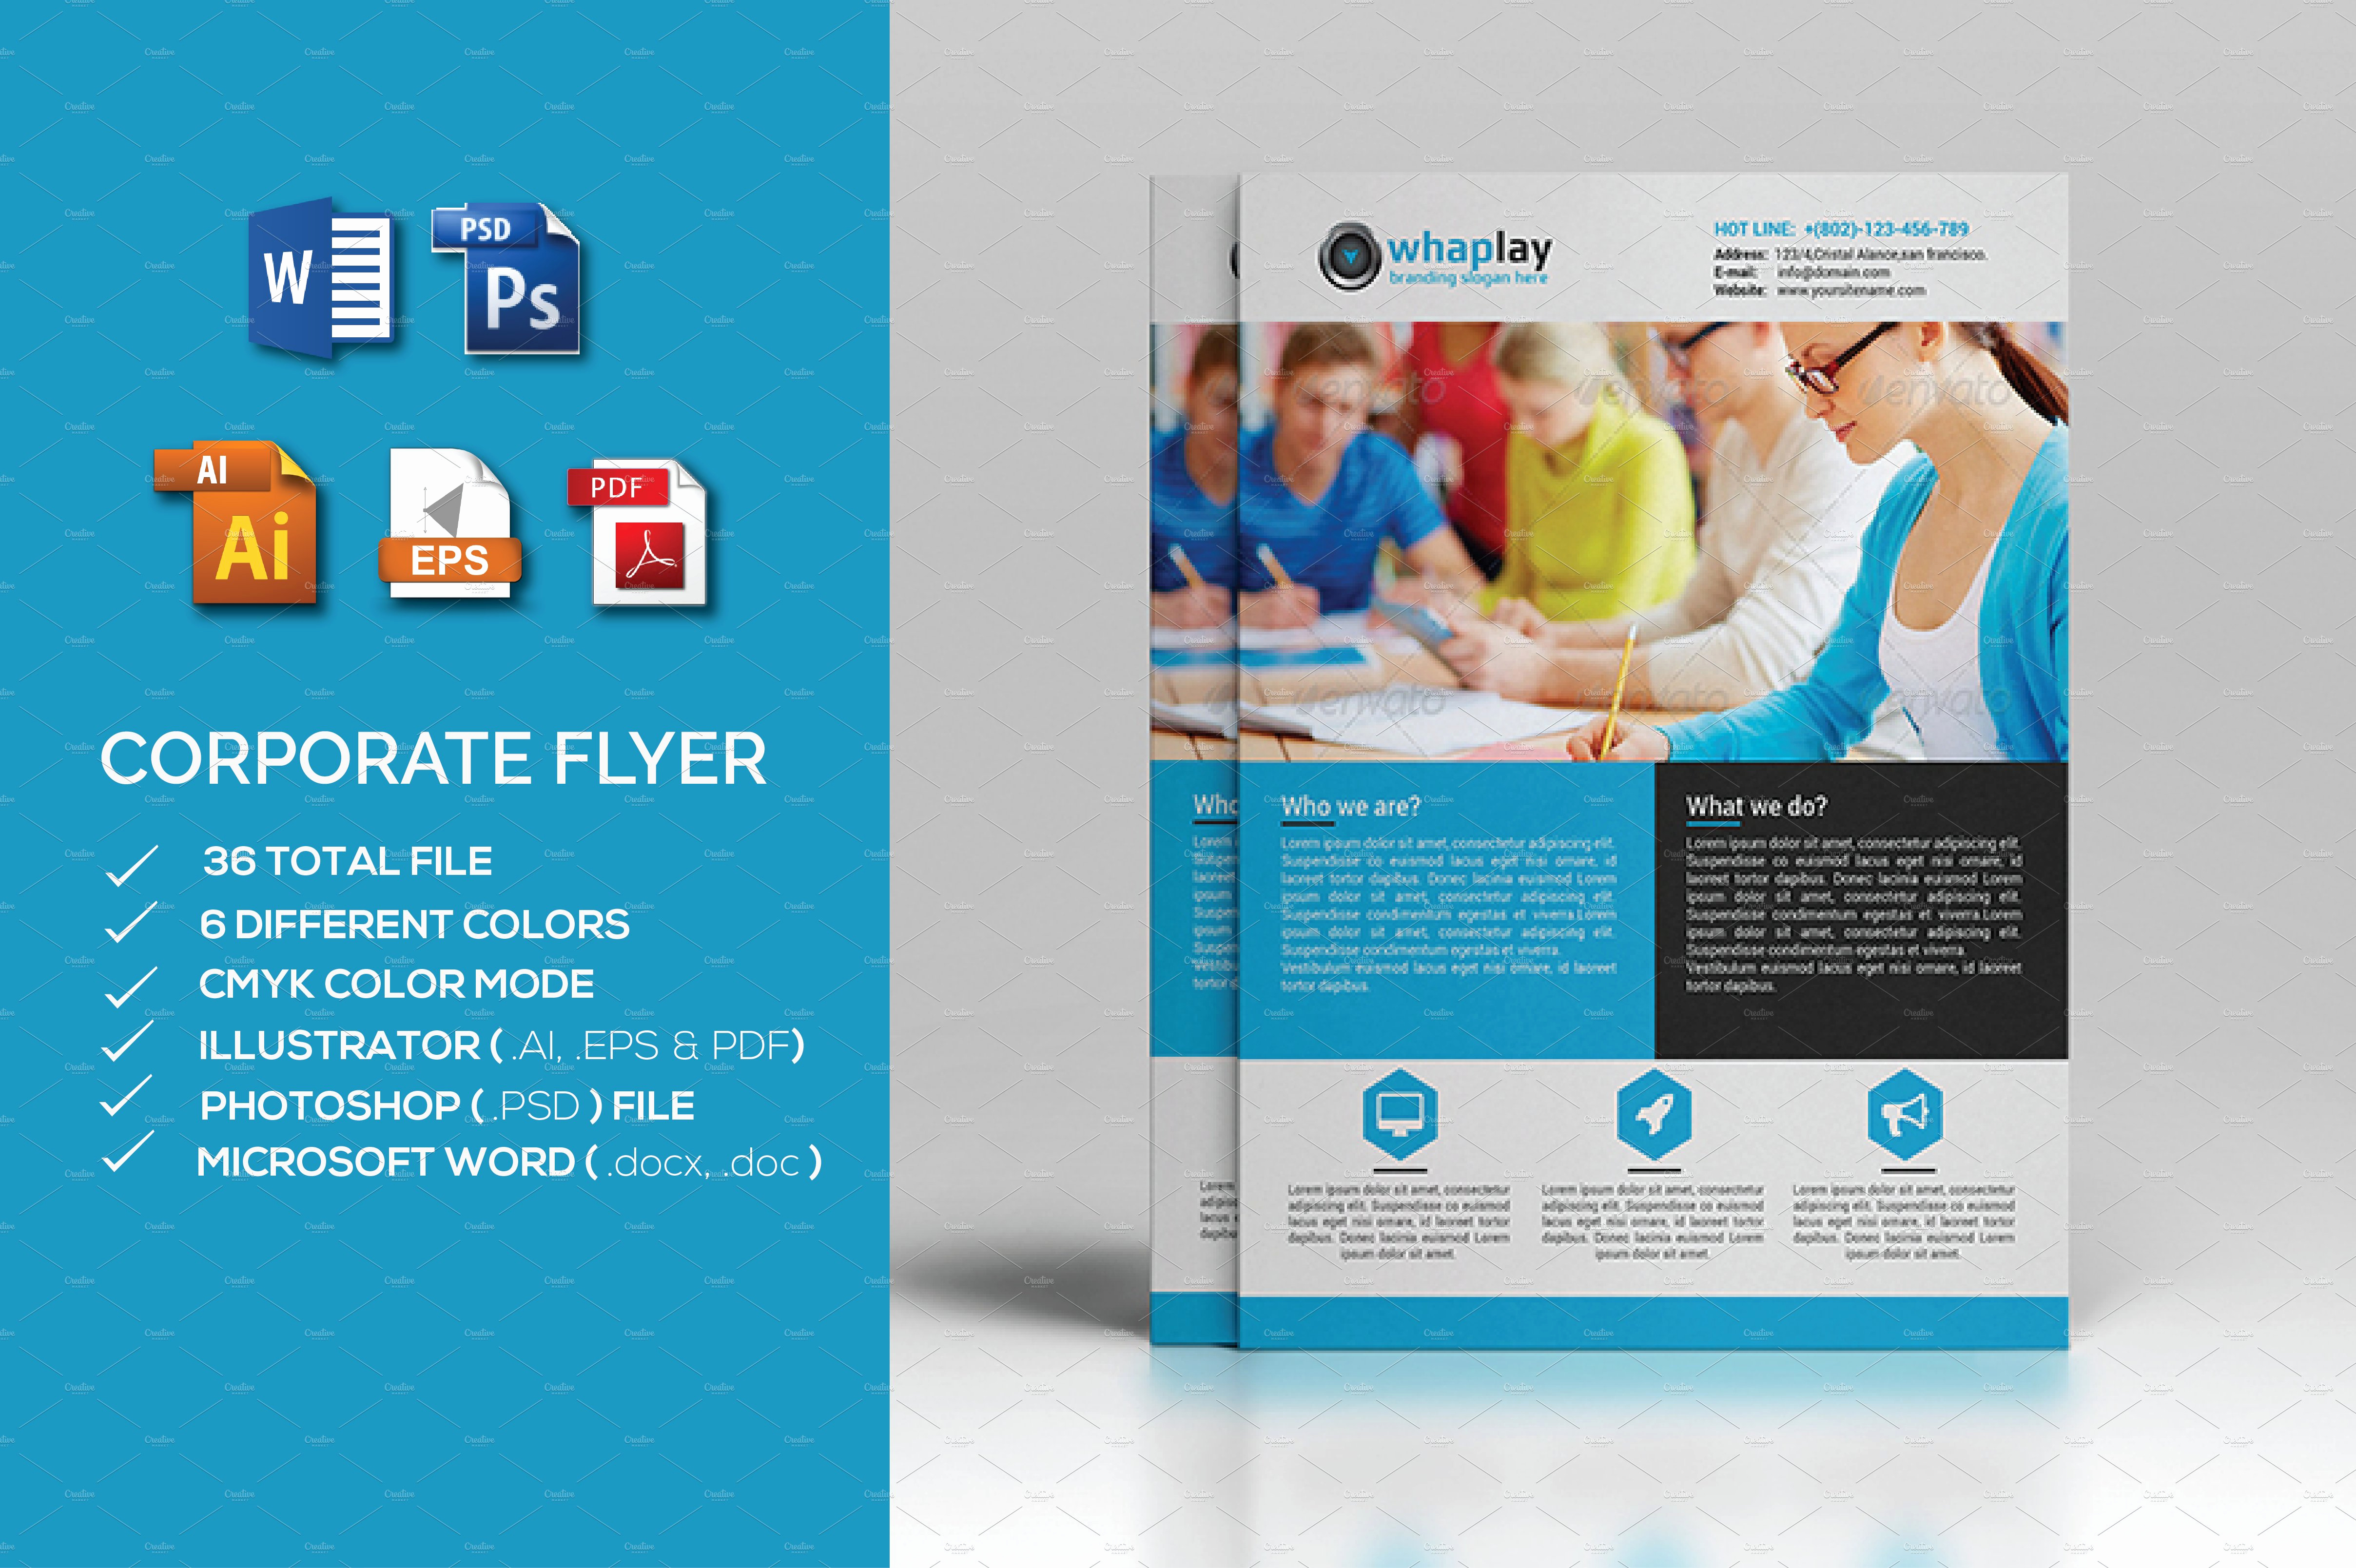 Microsoft Word Flyer Template Lovely Corporate Flyer Ms Word Flyer Templates Creative Market